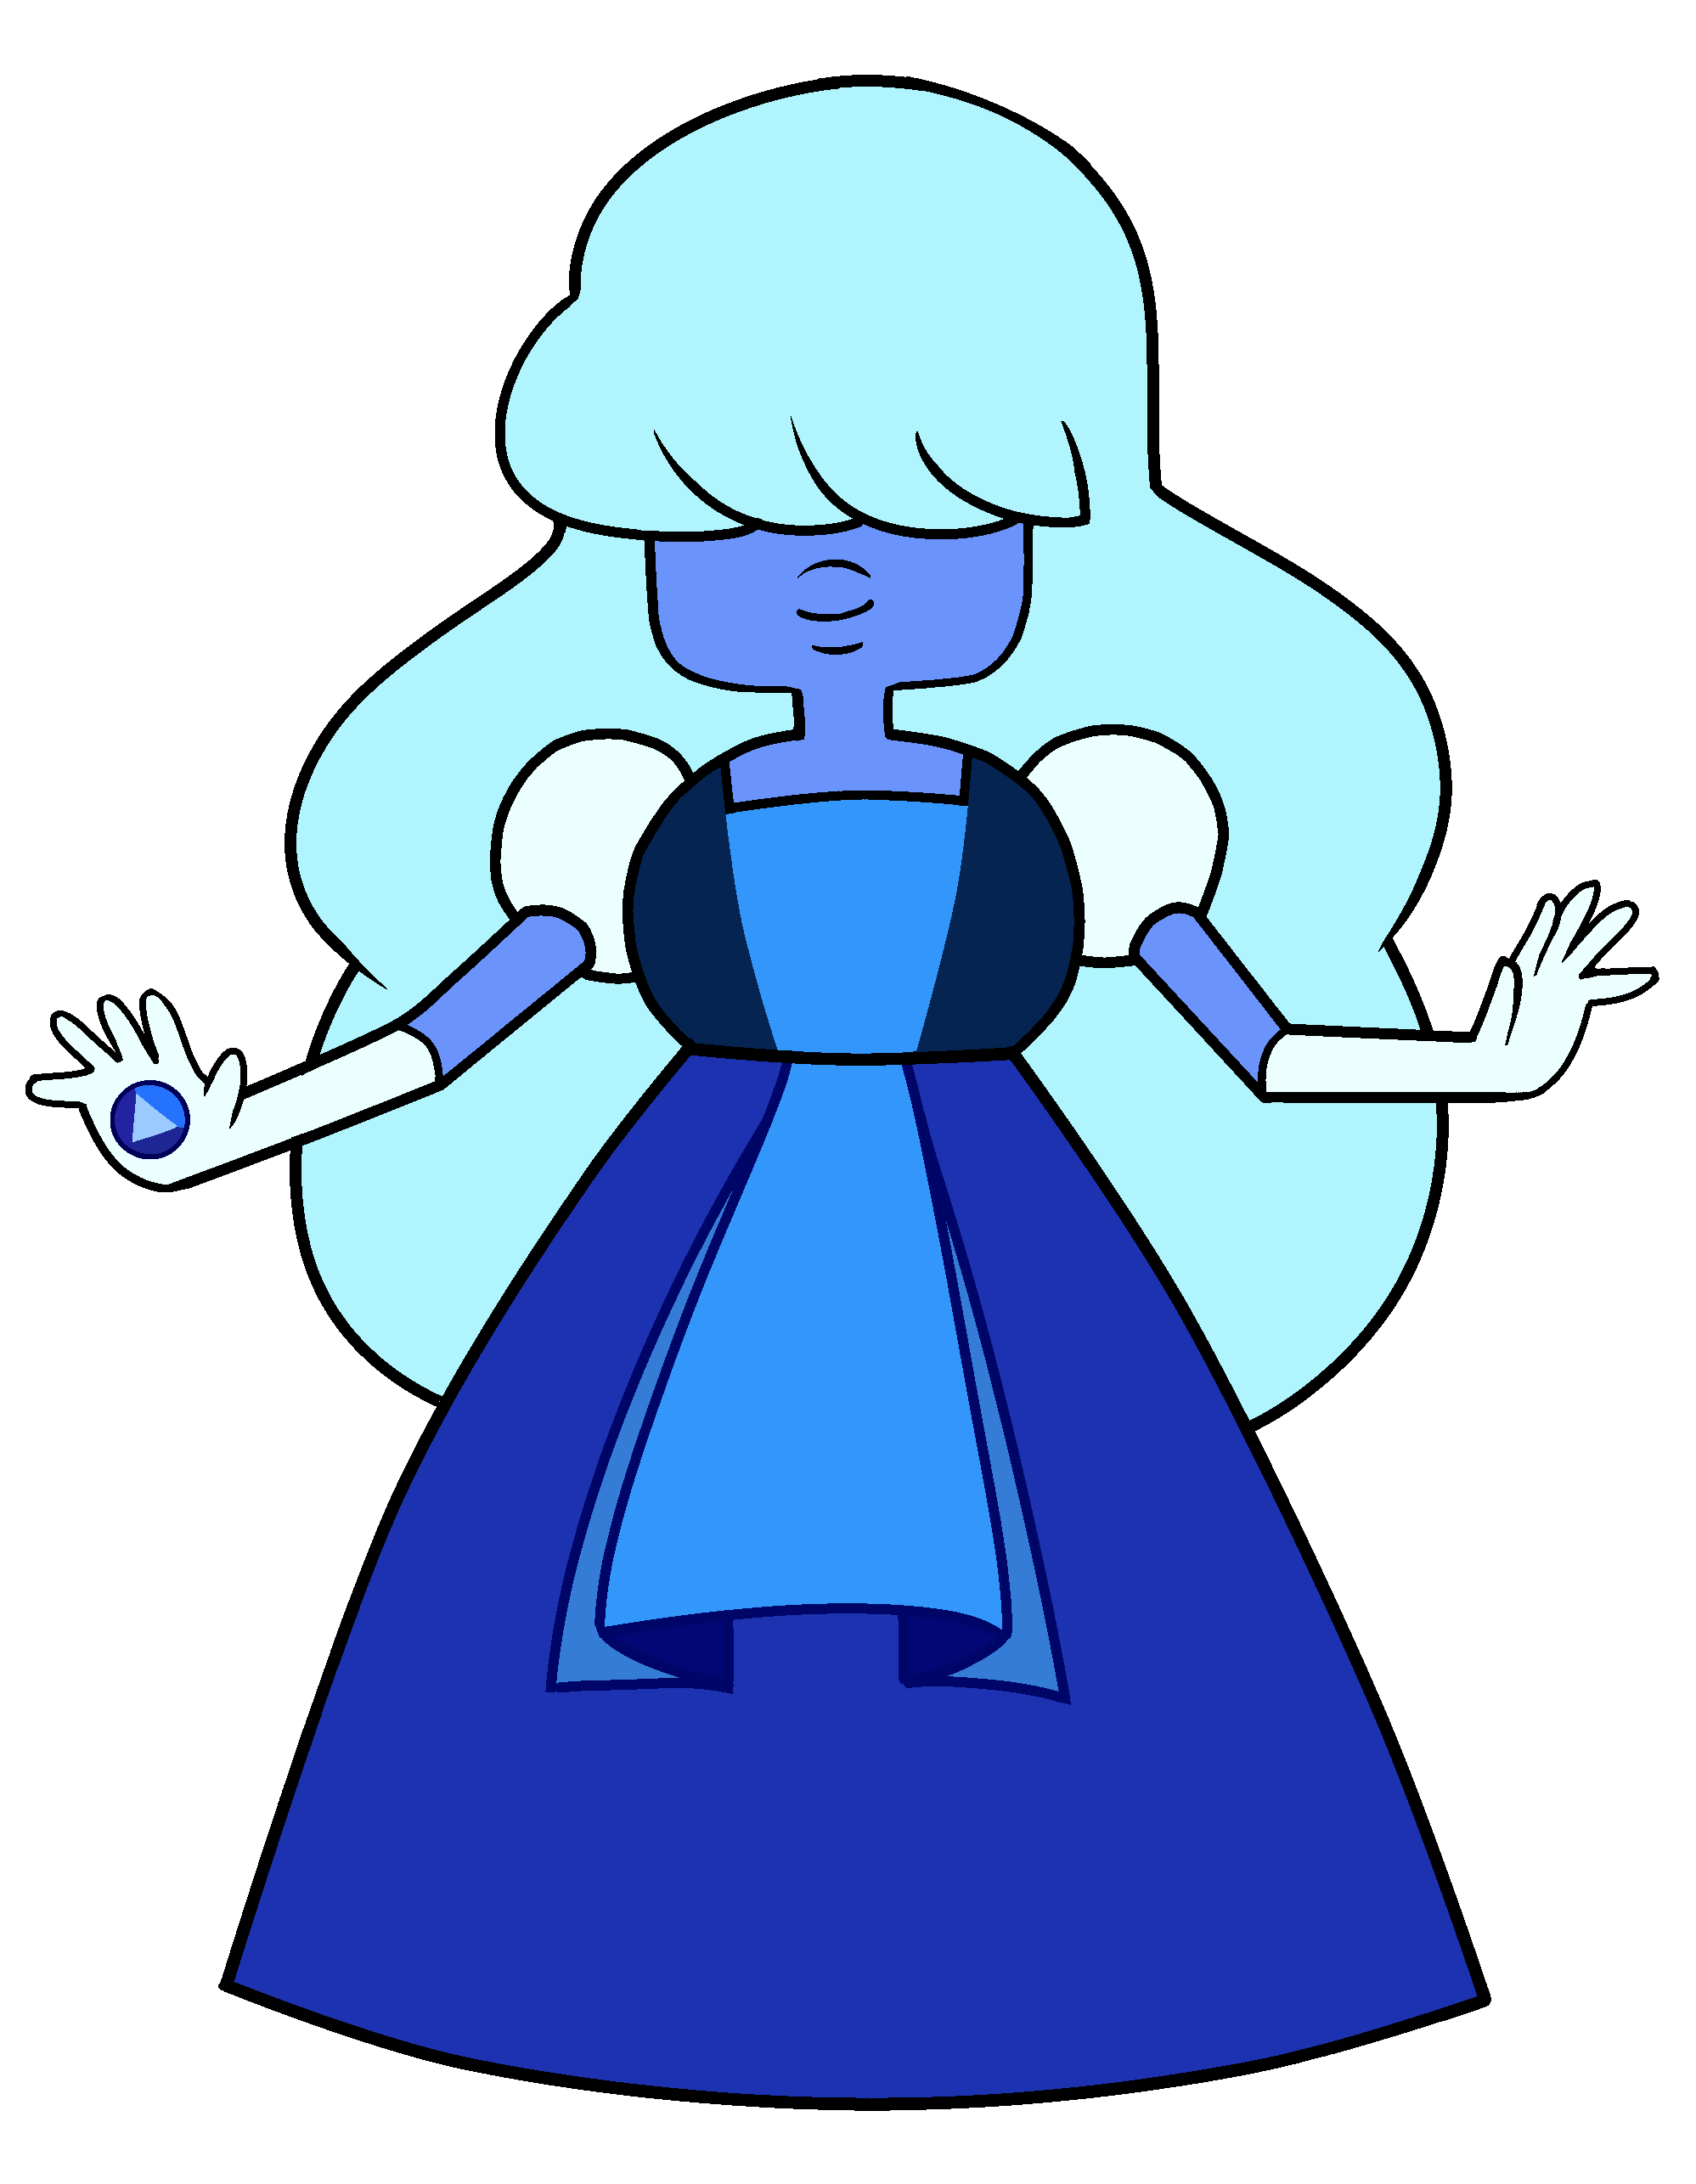 https://static.tvtropes.org/pmwiki/pub/images/susapphire.png